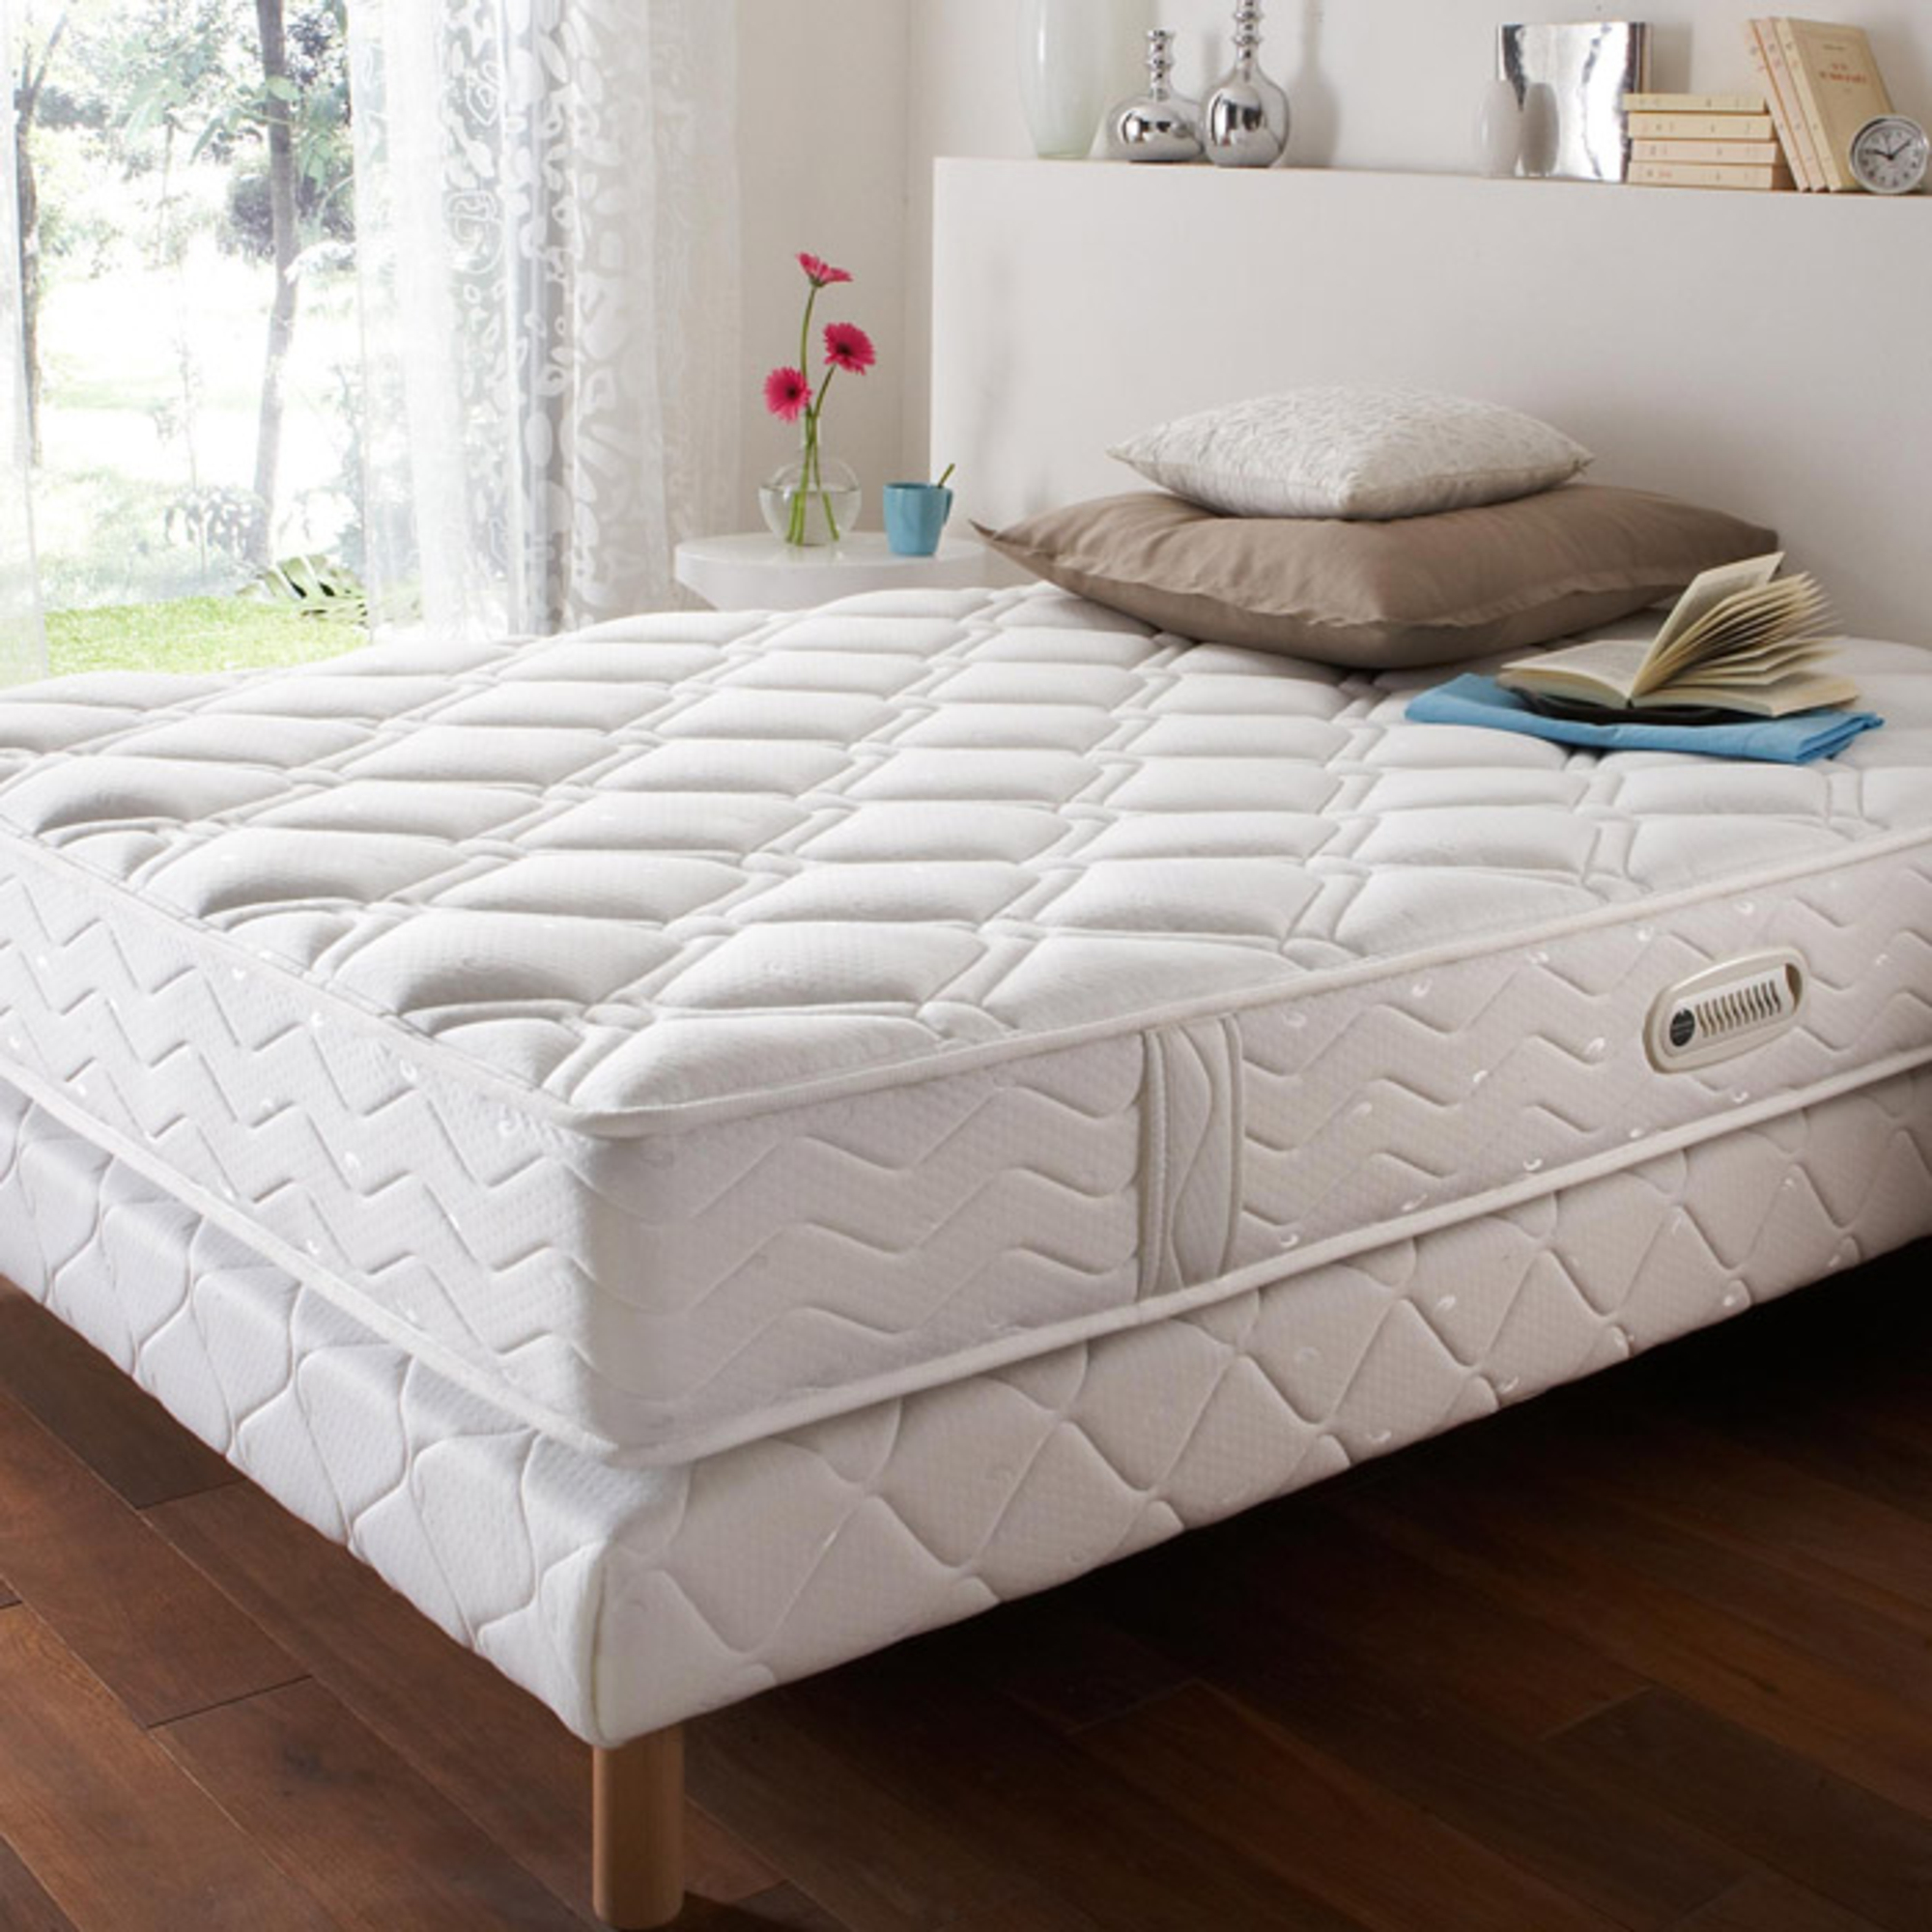 matelas ressorts ensach s accueil grand confort soutien ferme duvivier kinet. Black Bedroom Furniture Sets. Home Design Ideas